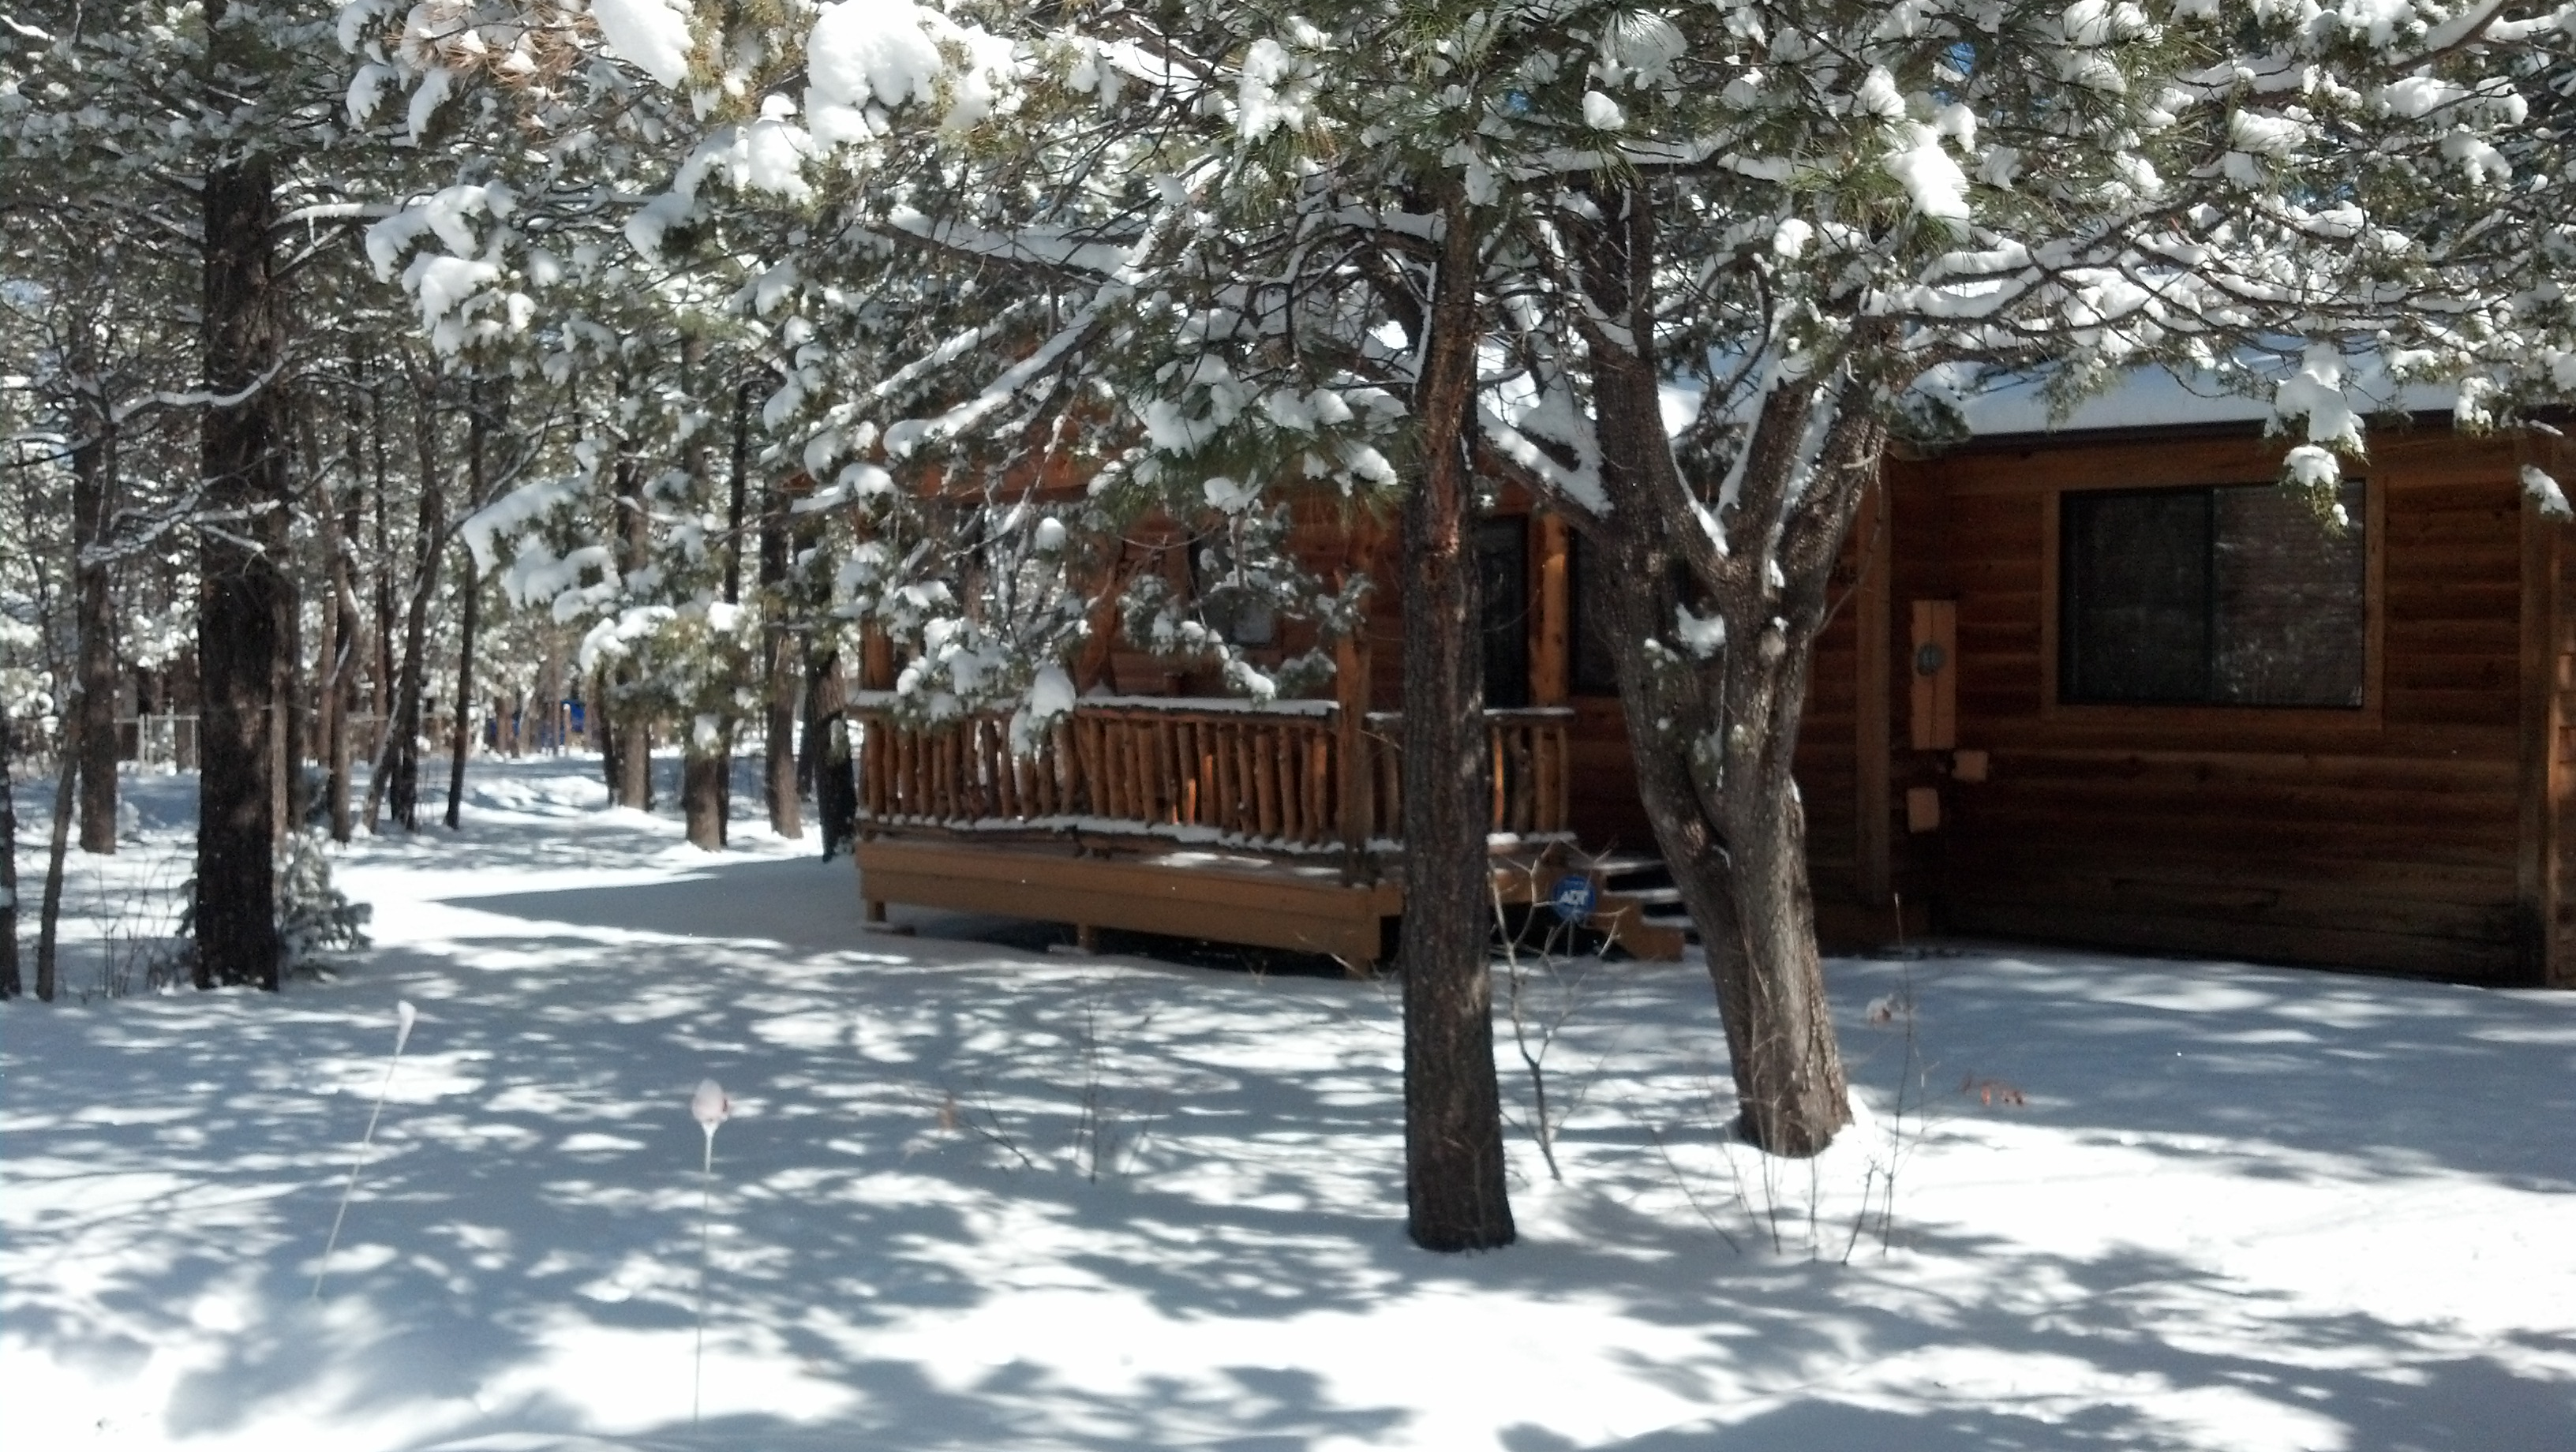 inspirational cabins rentals mountains arizona az pinetop best white in collection lakeside of images cabin rutroub the